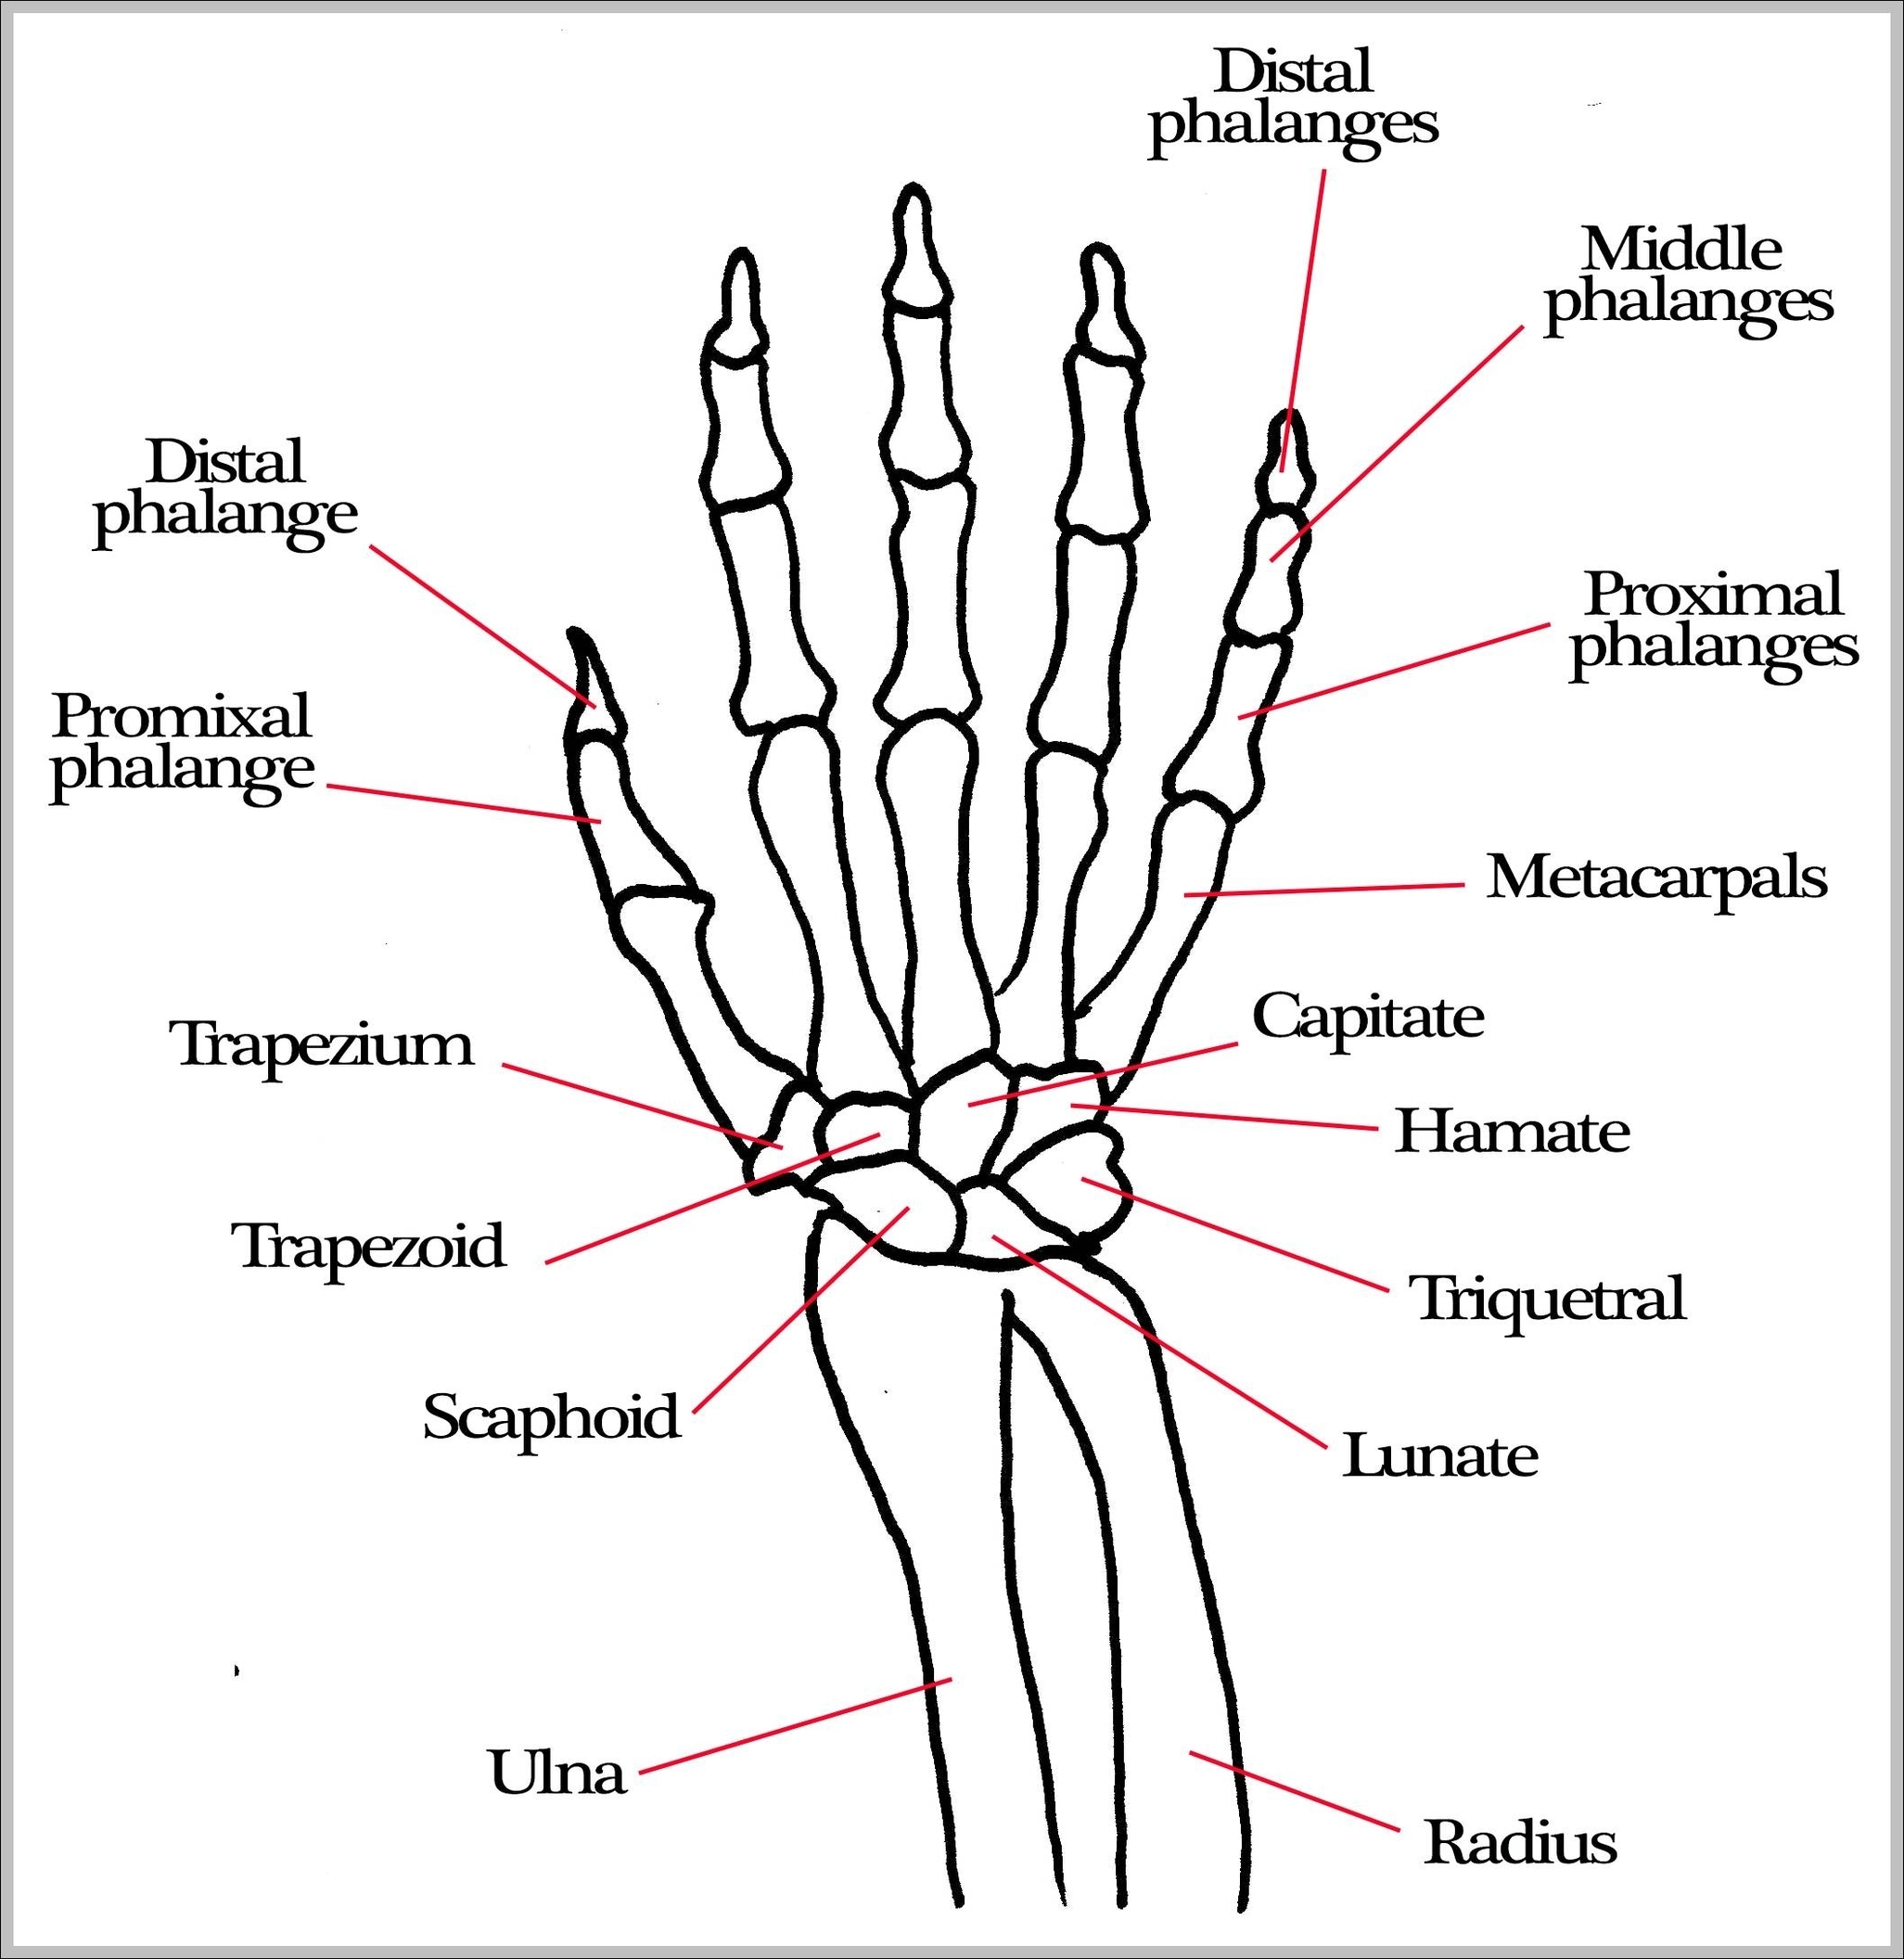 hand joints graph diagram rh graphdiagram com Hand Bones and Joints Diagram Hand Anatomy